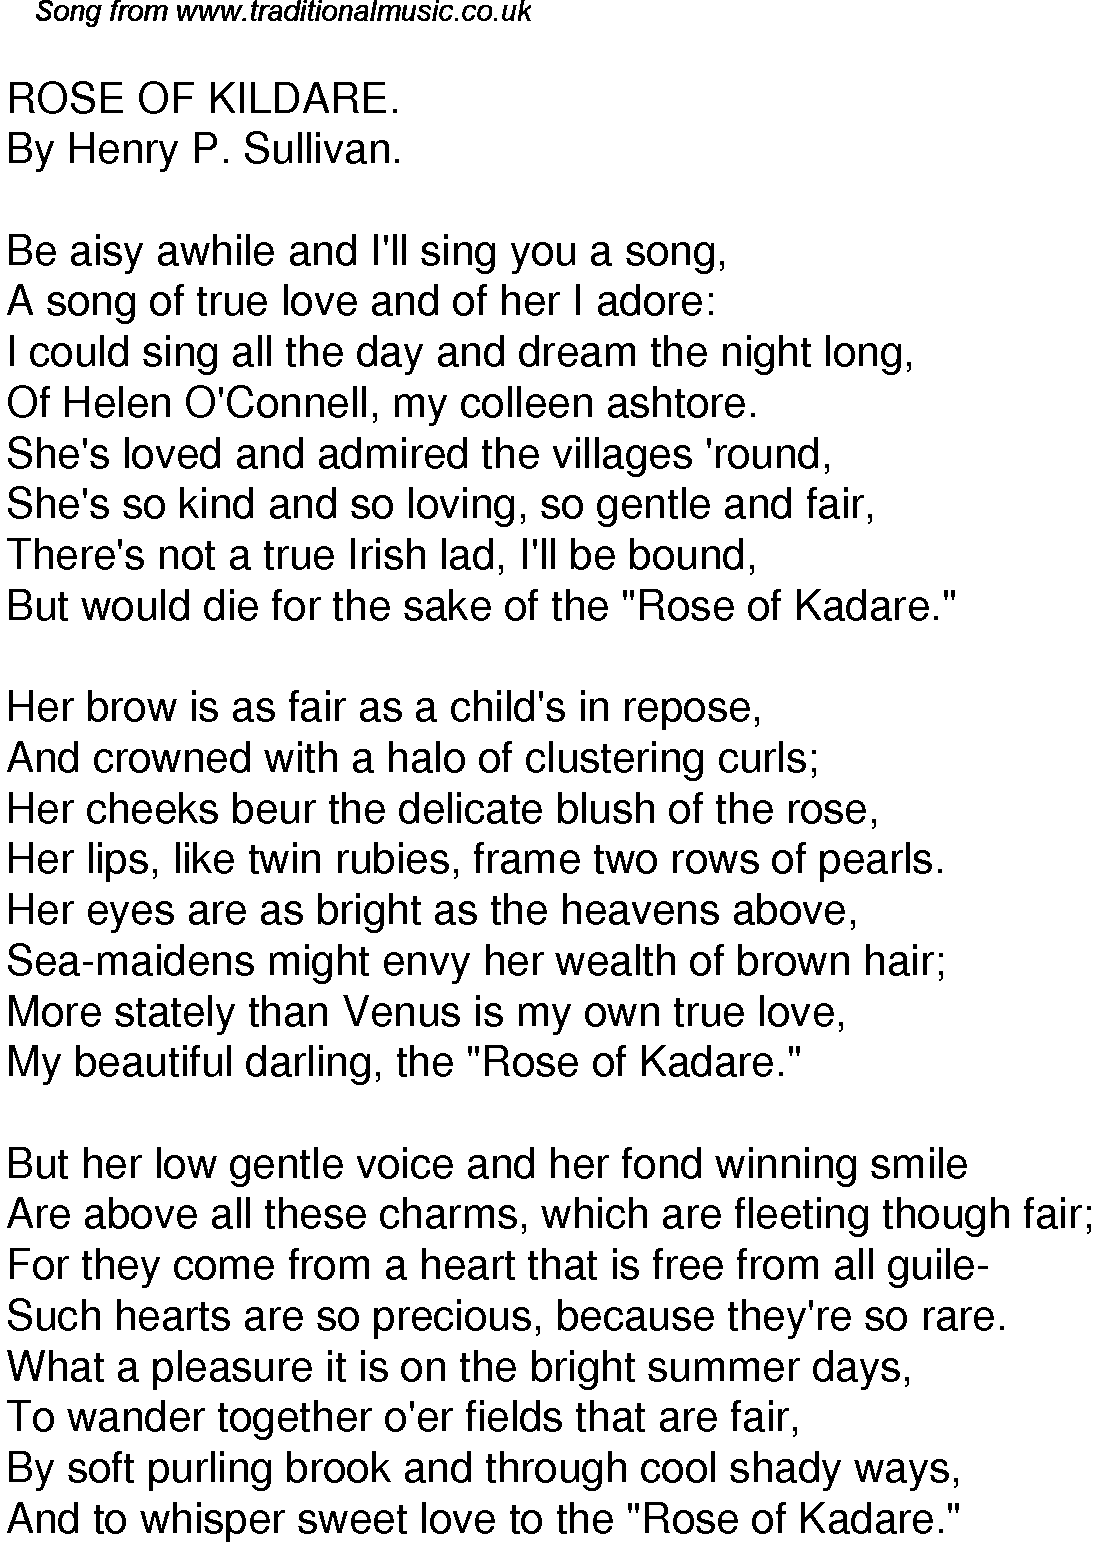 Lyrics to two of a kind